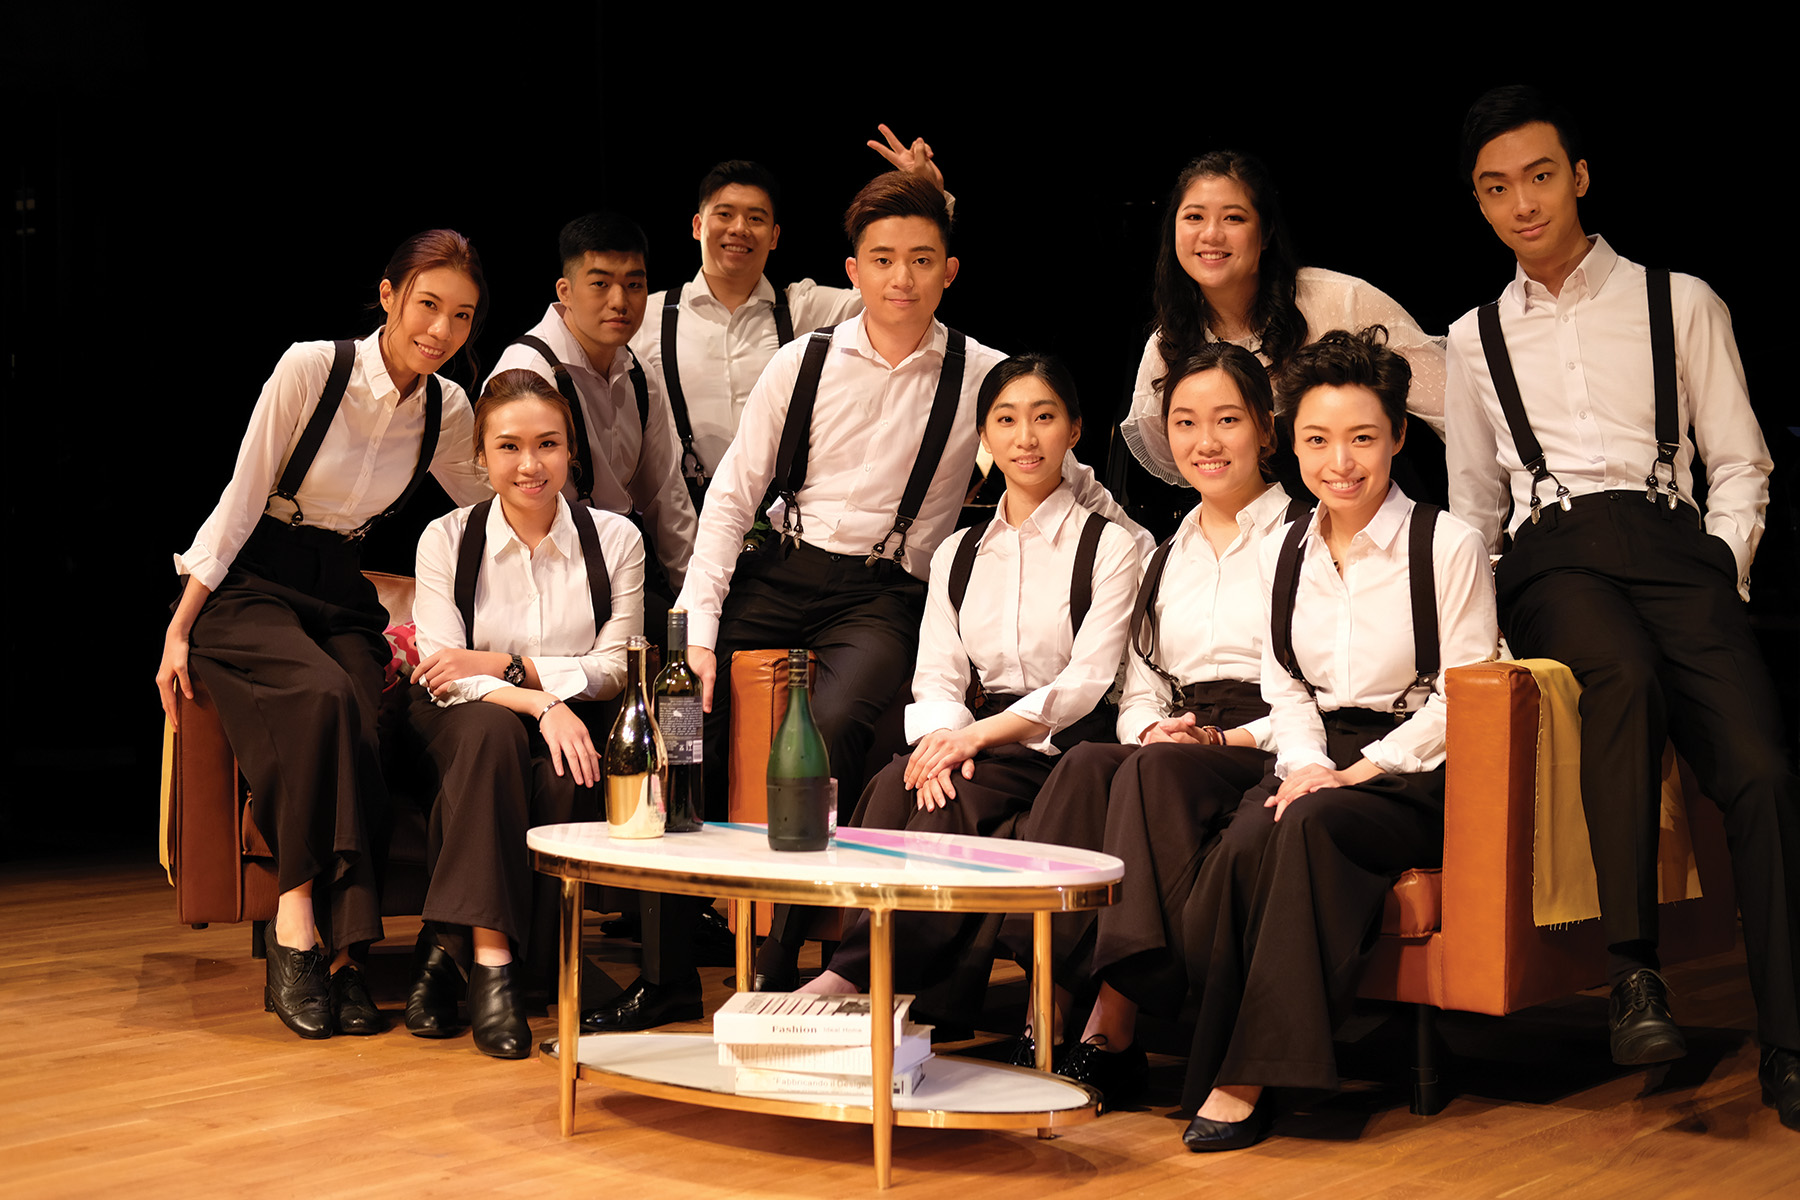 """Bel Canto Singers: """"My Beloved"""" – by Giacomo Puccini: The Ensemble with Liù. Photo credit: © David Quah"""